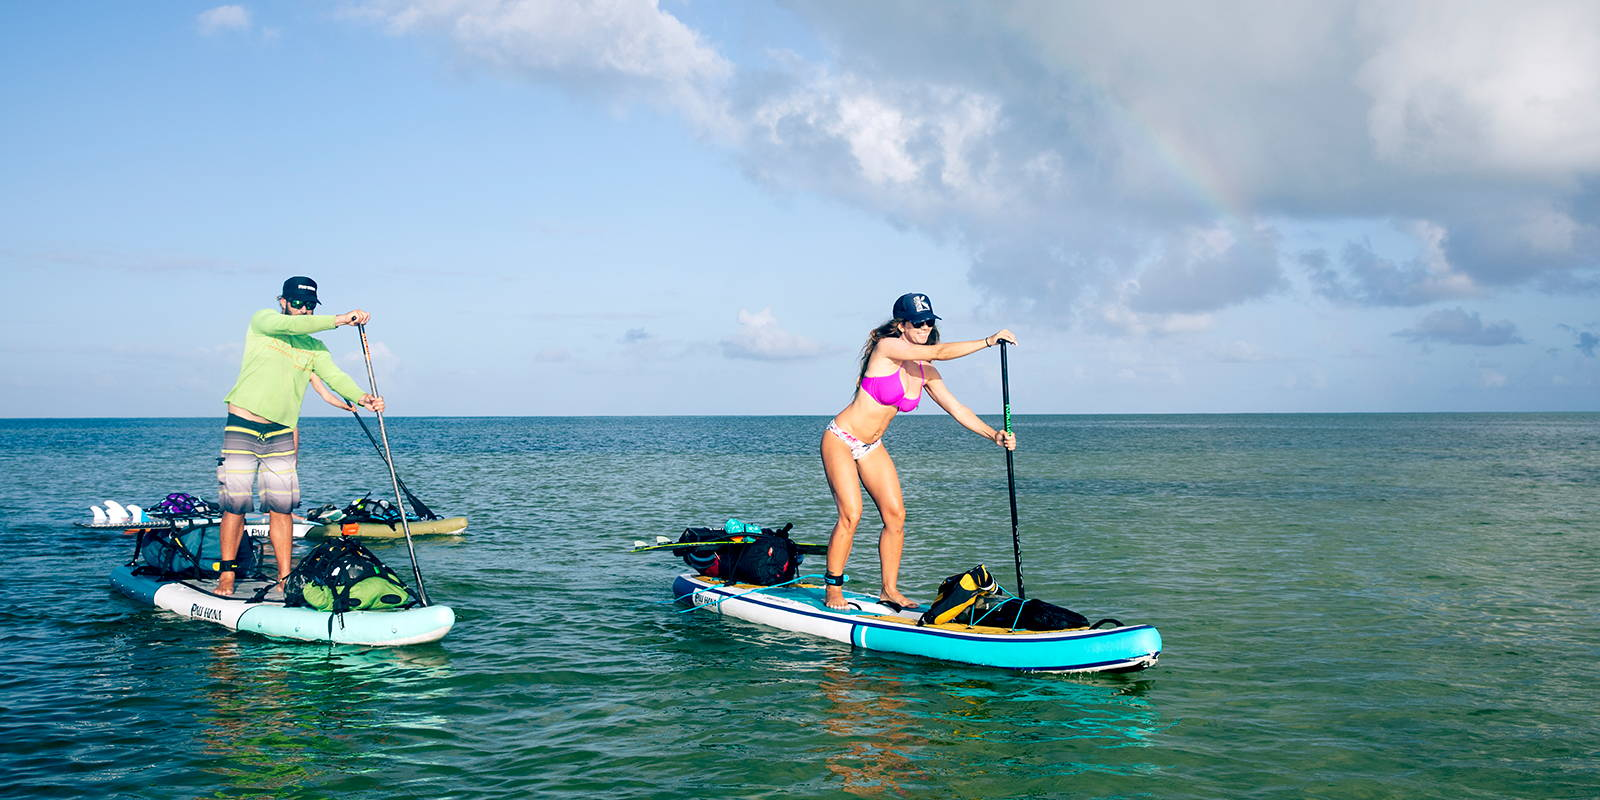 summer paddle boarding session in bikinis and boardshorts